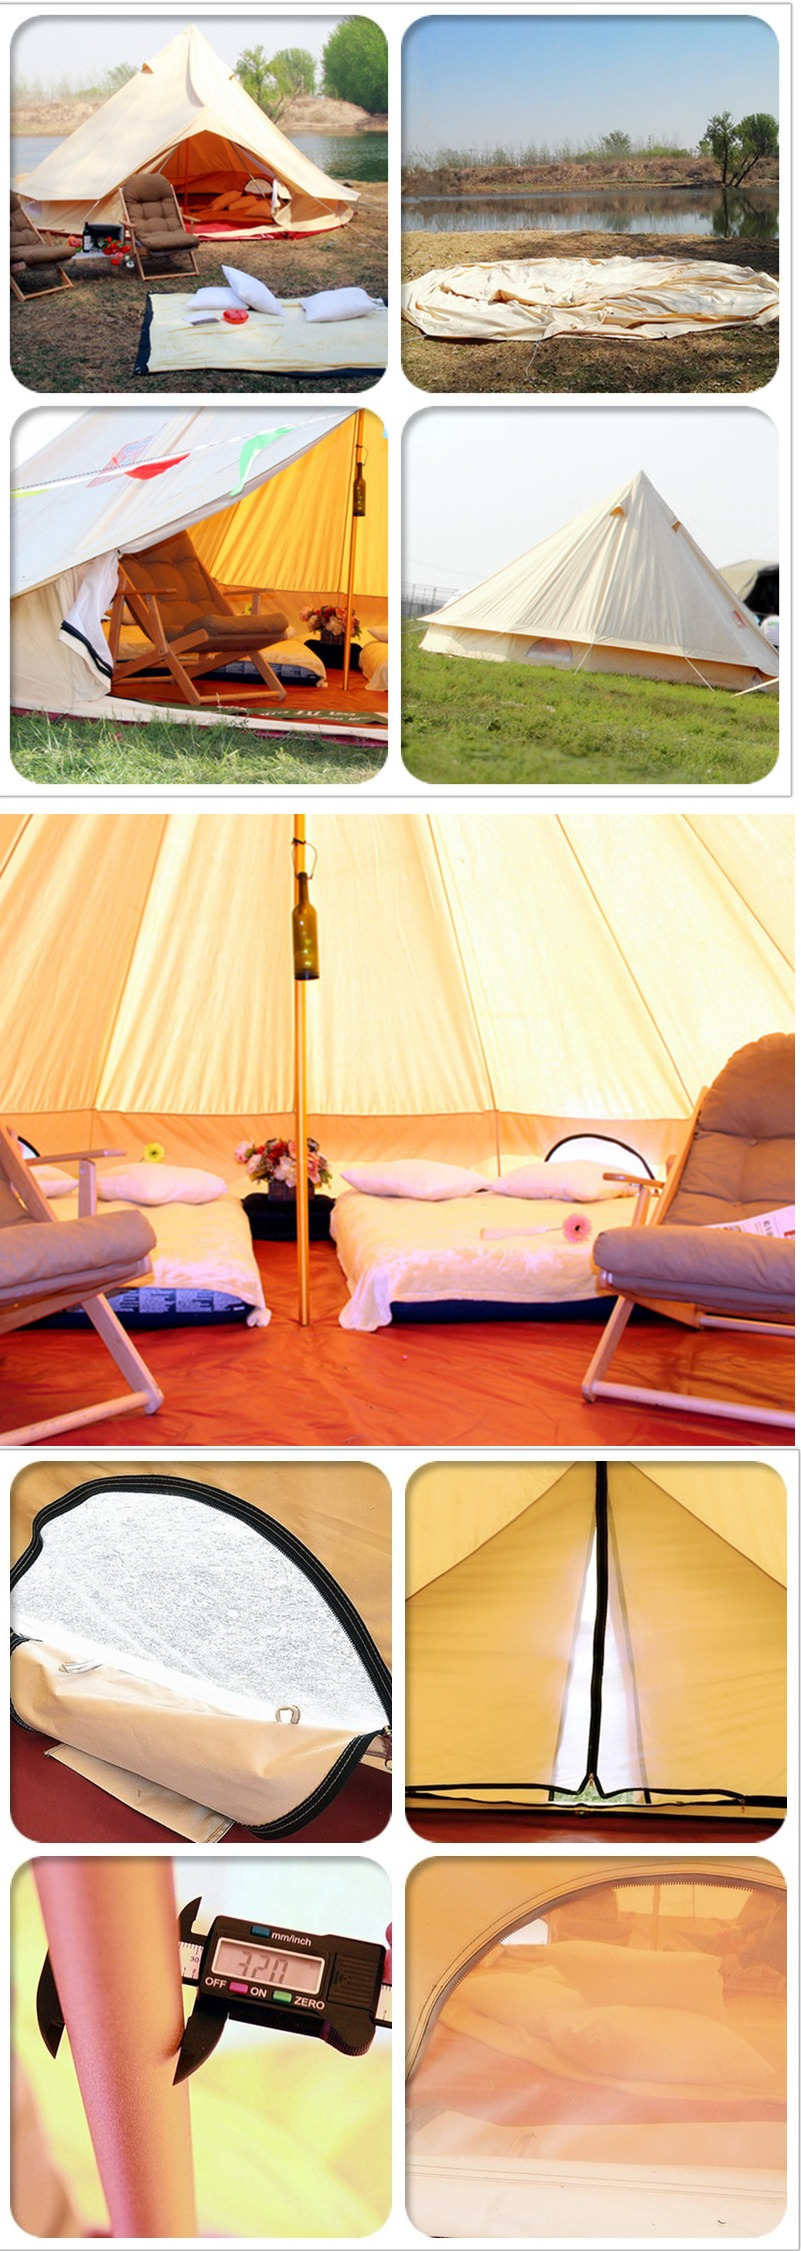 FireShot Capture http___www.ebay.com_itm_5M-16-4ft-Diameter-Canvas-Bell-Tent-Famliy-Camping-and-Pa